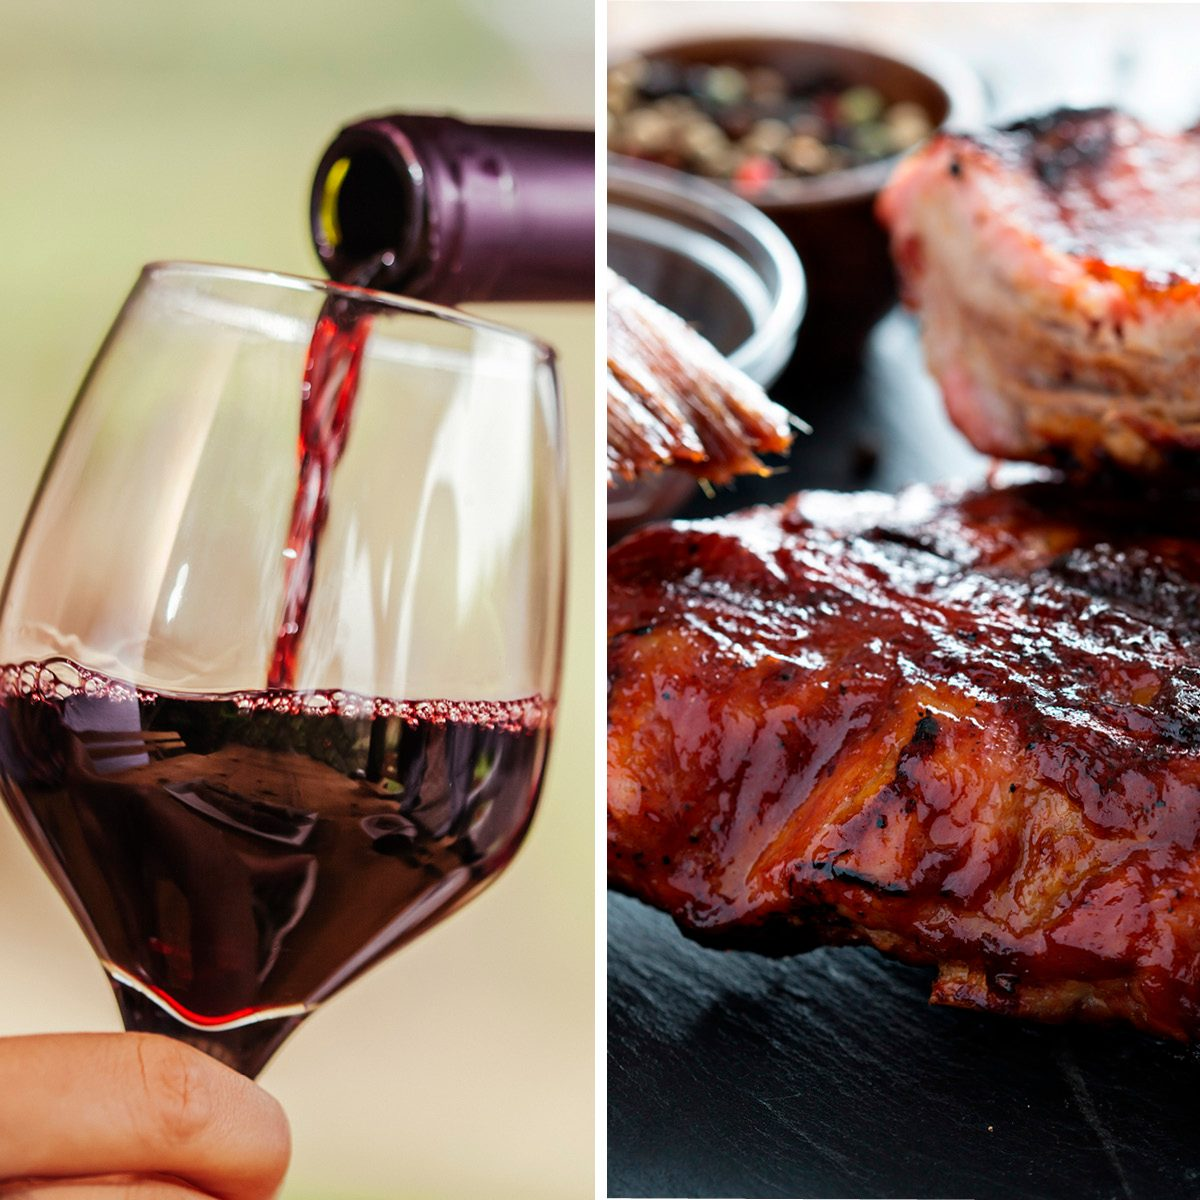 Grilled pork baby ribs with barbecue sauce; Shutterstock ID 432669163; Job (TFH, TOH, RD, BNB, CWM, CM): TOH Red Wine Being Poured In The Glass; Shutterstock ID 508852768; Job (TFH, TOH, RD, BNB, CWM, CM): TOH